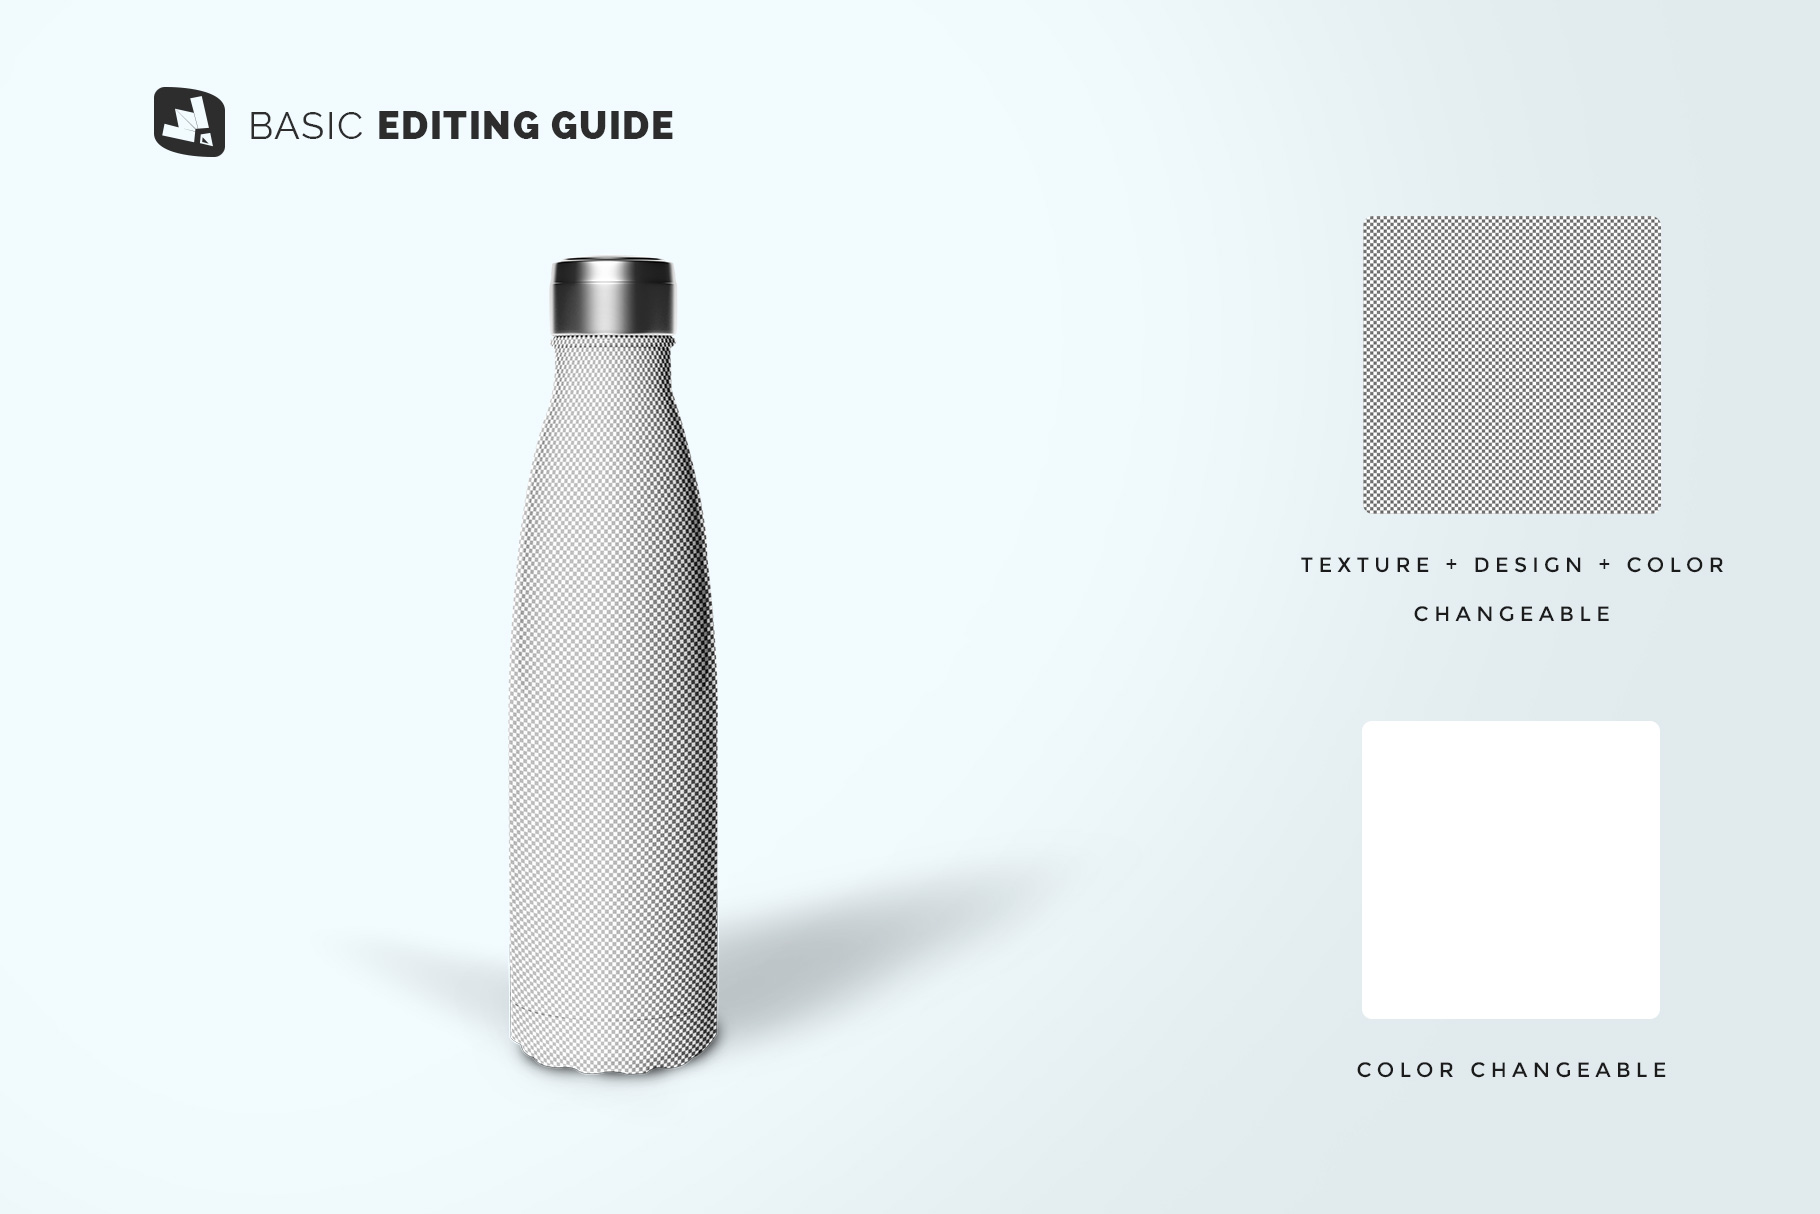 editability of the steel thermos bottle mockup